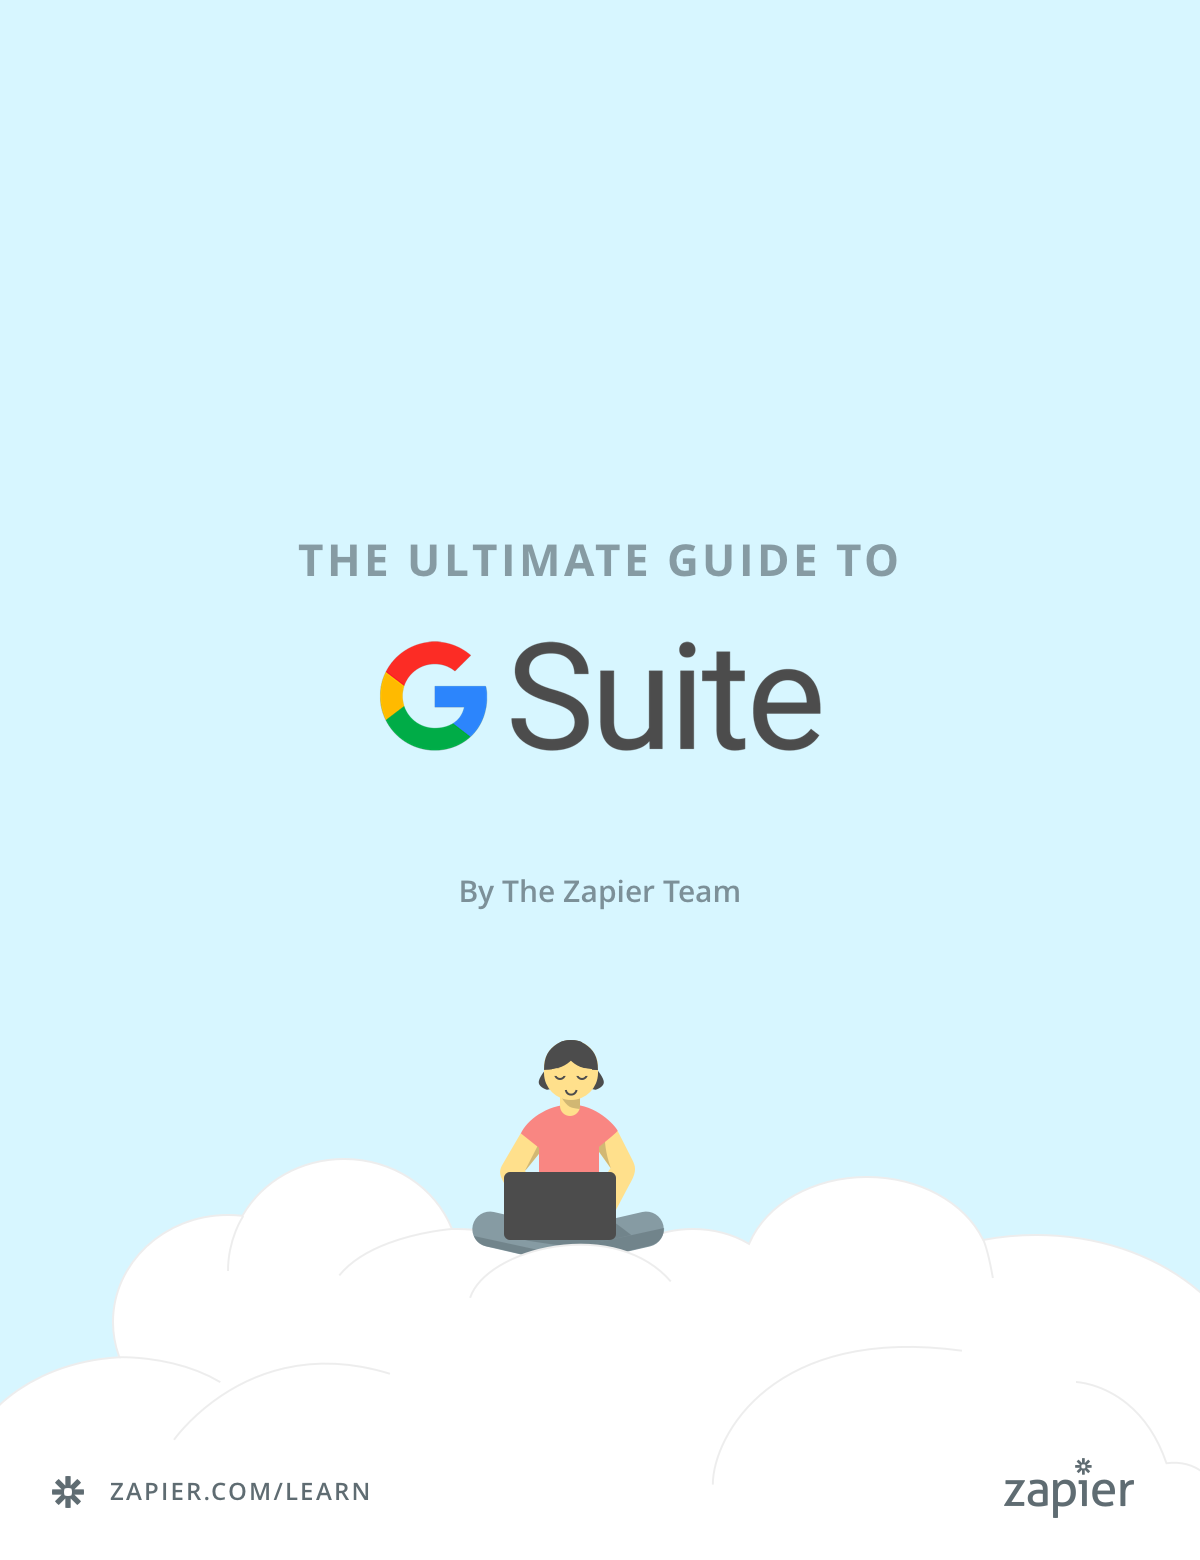 Ultimate Guide to G Suite